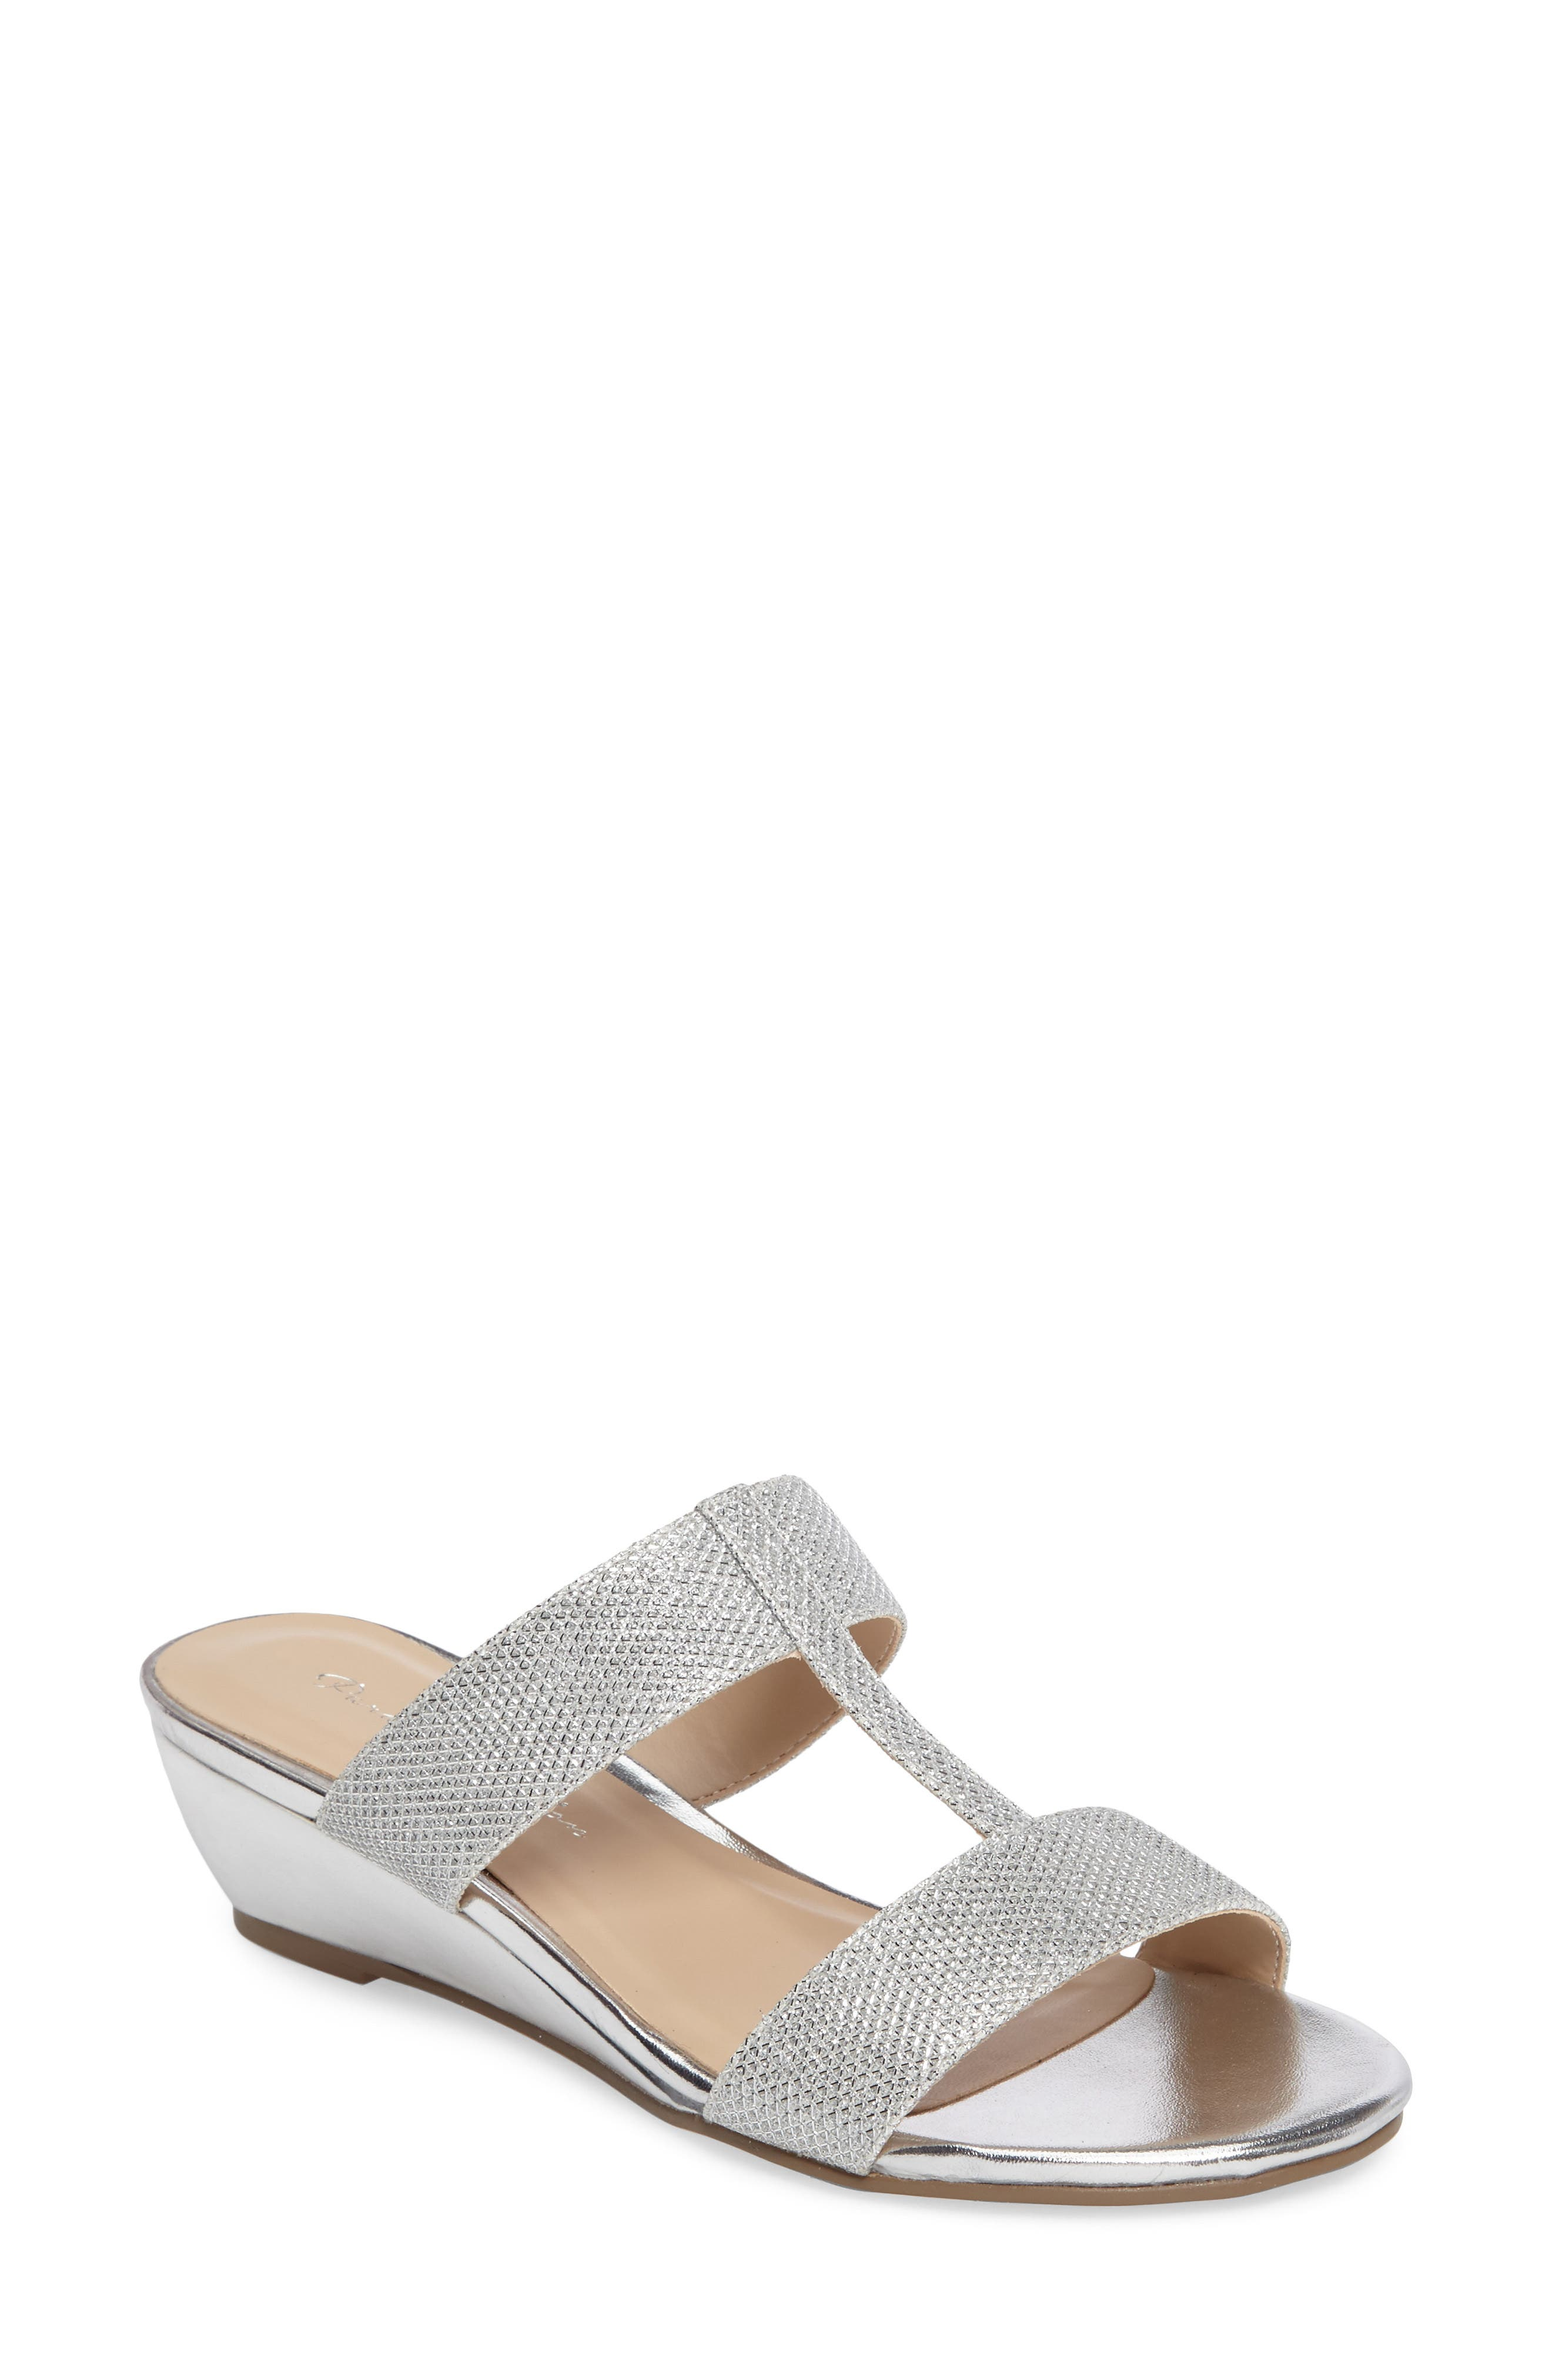 Melina Wedge Slide Sandal,                         Main,                         color,